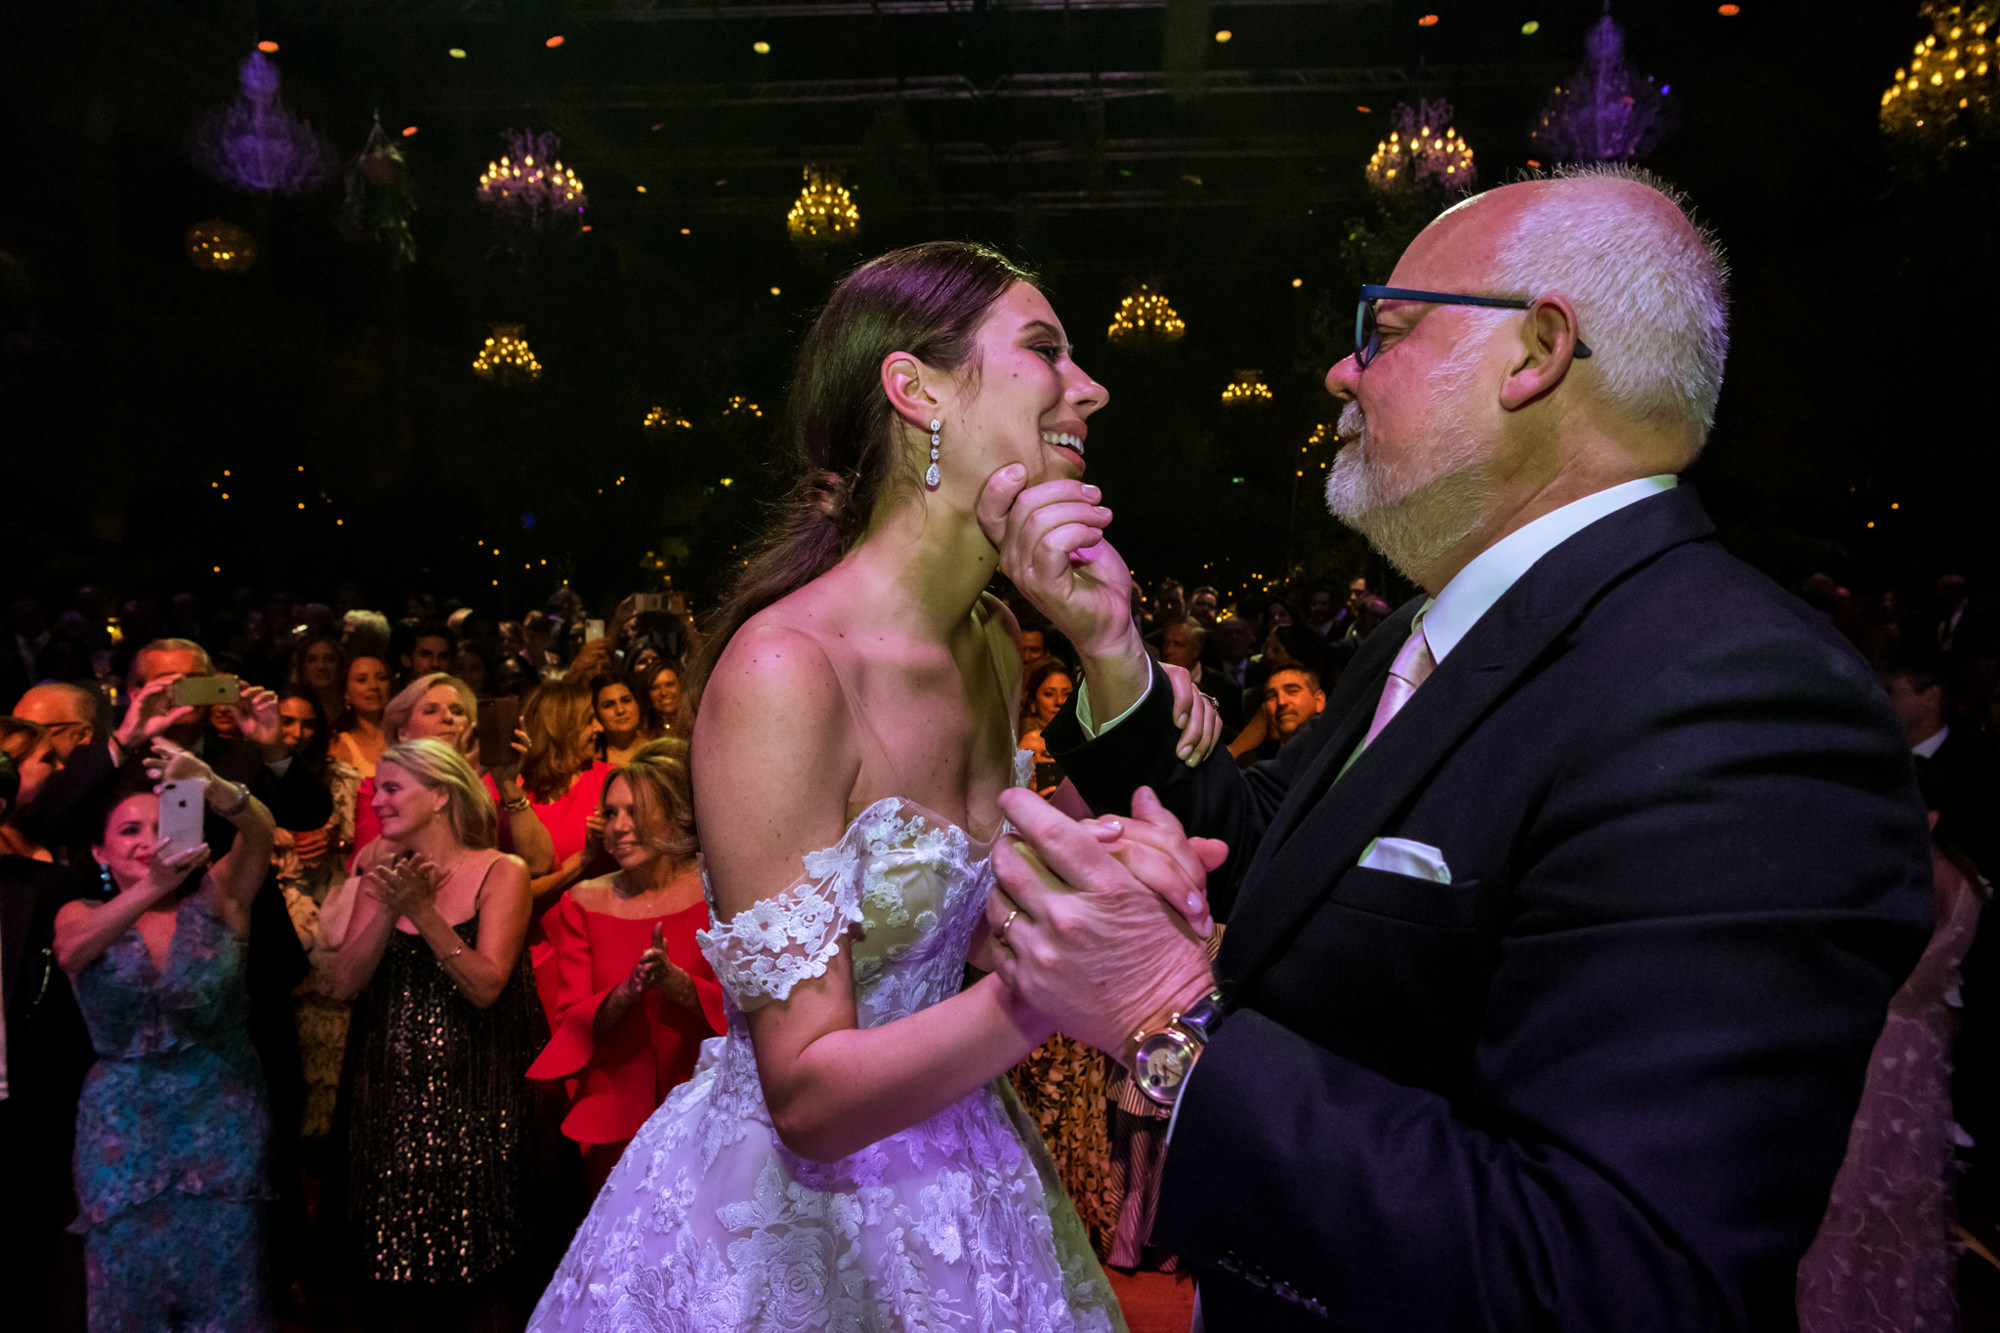 Sweet father holding bride's face during formal dance photo by Fotobelle: Isabelle Hattink